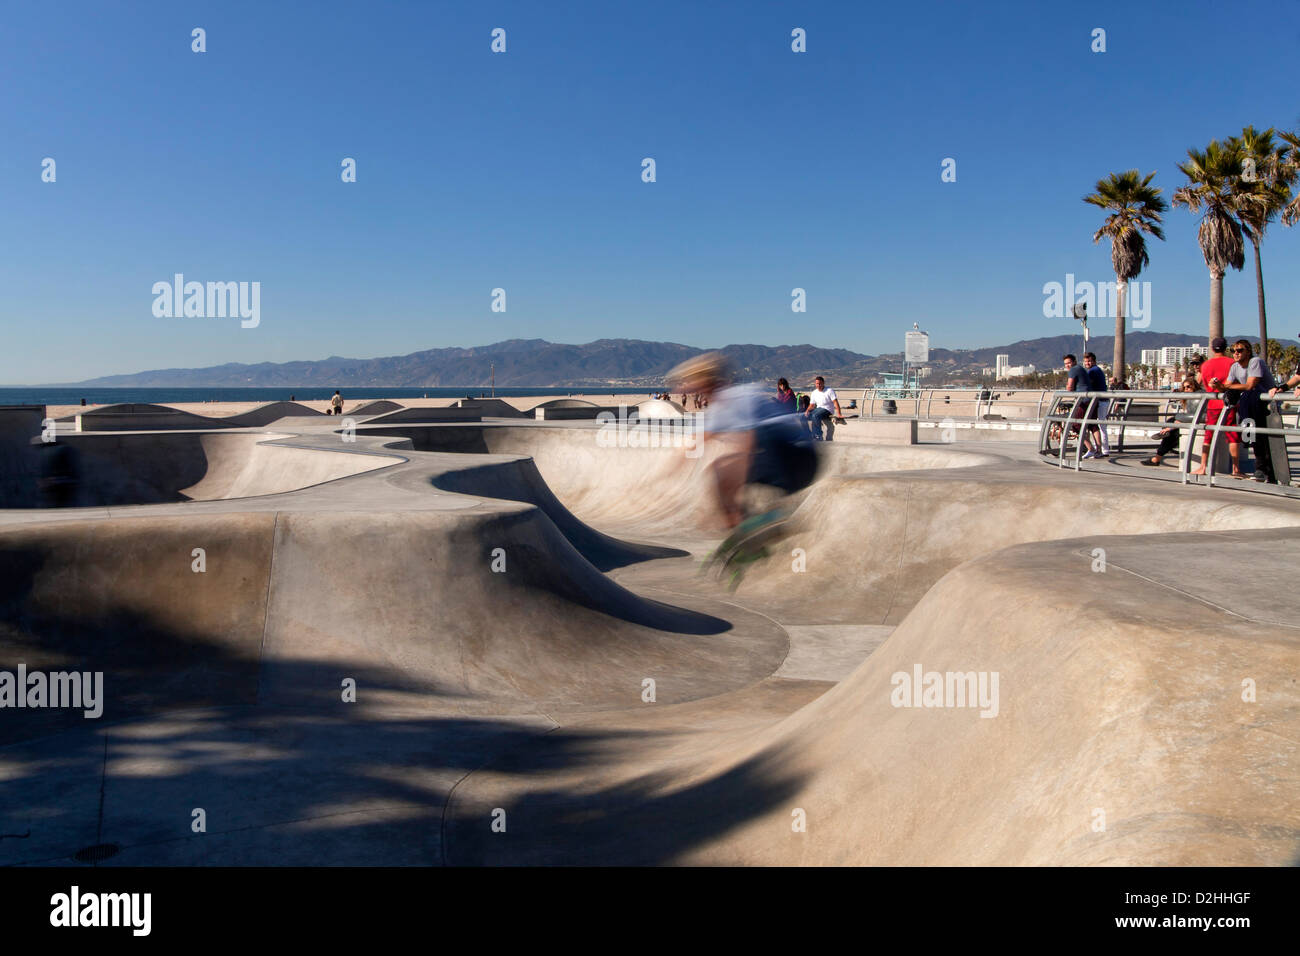 Skater at the skate park in Venice Beach, Los Angeles, California, United States of America, USA Stock Photo